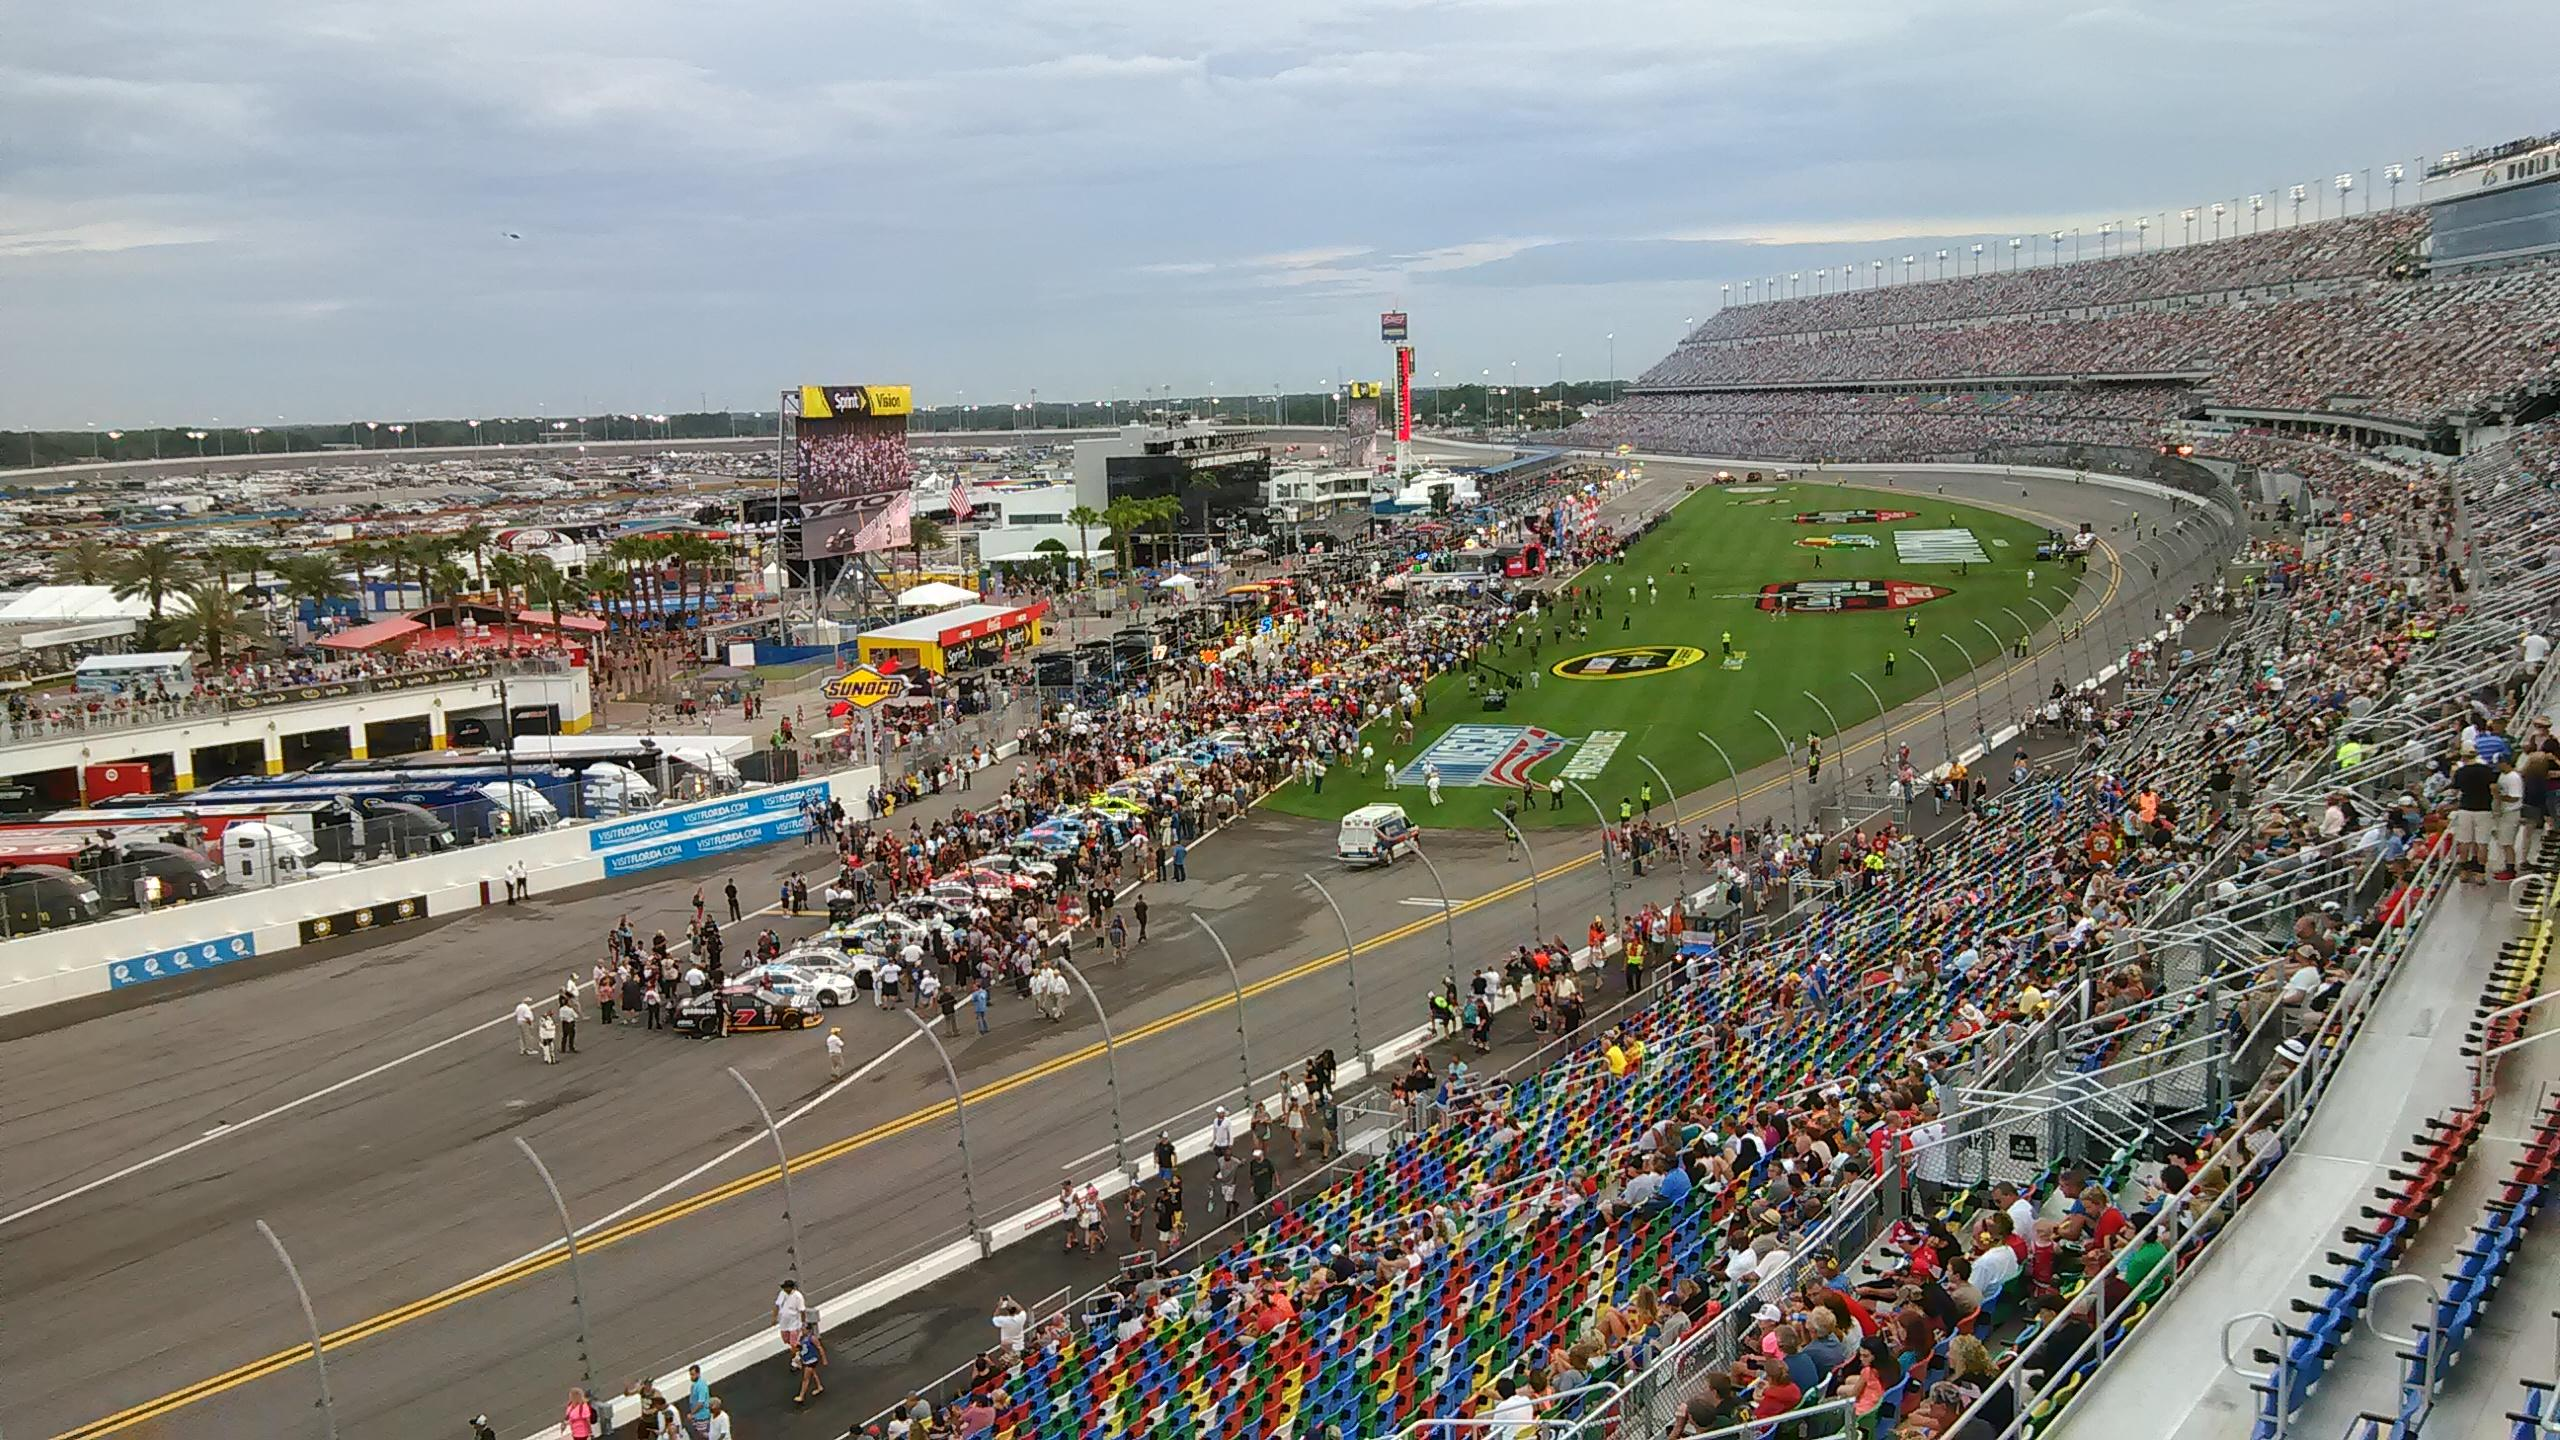 Daytona International Speedway Section 423 Row 24 Seat 4a